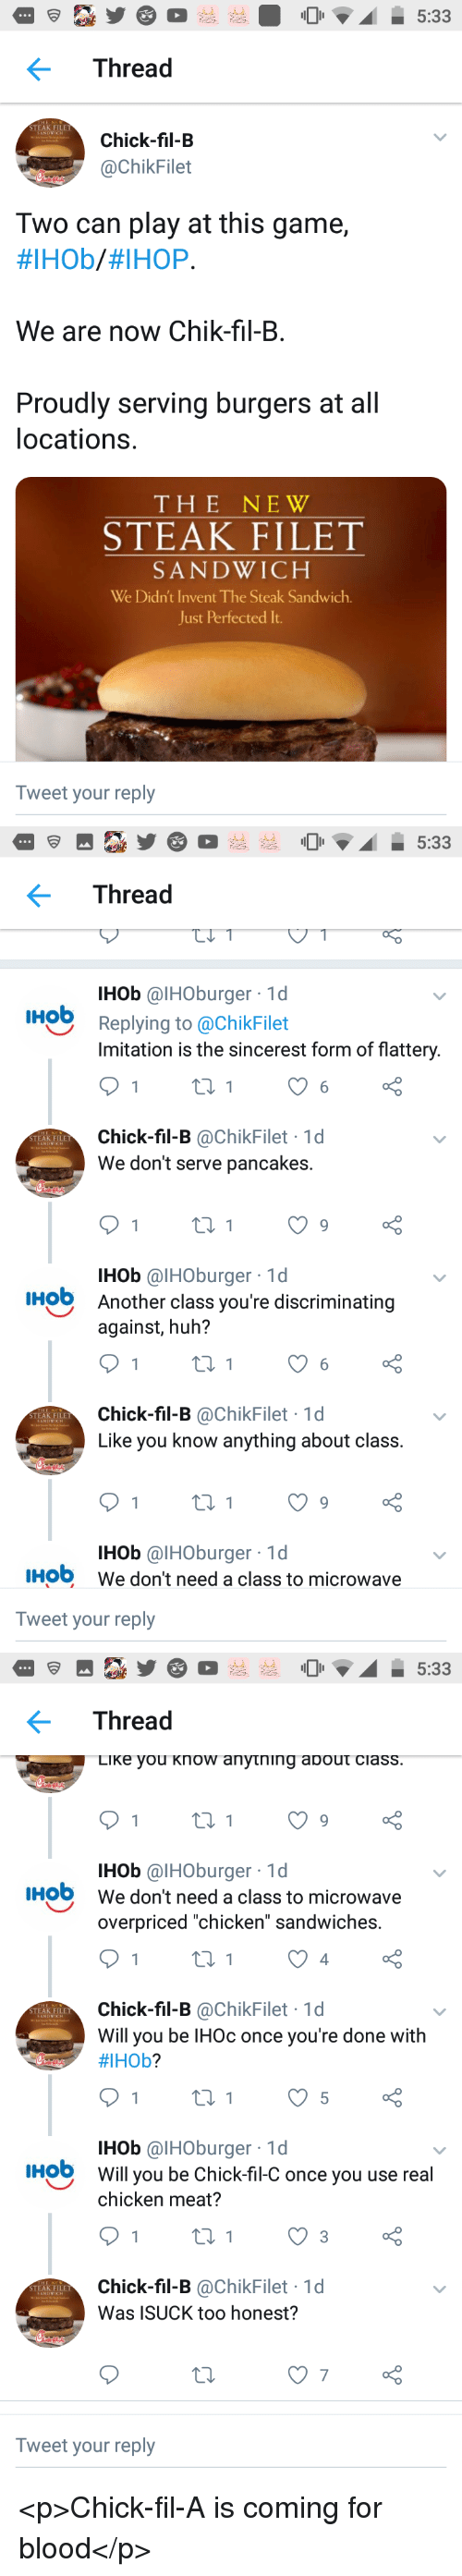 "Chick-Fil-A, Huh, and Ihop: Thread  STEAK FILET  Chick-fil-B  @ChikFilet  Two can play at this game,  #IHOb/#IHOP.  We are now Chik-fil-B.  Proudly serving burgers at all  locations.  THE NEW  STEAK FILET  SANDWICH  We Didn't Invent The Steak Sandwich.  Just Perfected It  Tweet your reply   Thread  IHob @IHOburger 1d  IHob  Replying to @ChikFilet  Imitation is the sincerest form of flattery  Chick-fil-B @ChikFilet 1d  We don't serve pancakes.  STEAK FILET  IHob @IHOburger 1d  Another class you're discriminating  against, huh?  HO  Chick-fil-B @ChikFilet 1d  Like you know anything about class  STEAK FILET  IHob @IHOburger 1d  We don't need a class to microwave  IHO  Tweet your reply   Thread  LiKe you Know anytning about ciass  IHob @IHOburger 1d  We don't need a class to microwave  overpriced ""chicken"" sandwiches.  IHO  4  Chick-fil-B @ChikFilet 1d  Will you be IHOc once you're done with  #IHOb?  STEAK FILET  IHob @IHOburger 1d  Will you be Chick-fil-C once you use real  chicken meat?  HO  Chick-fil-B @ChikFilet 1d  Was ISUCK too honest?  STEAK FILET  7  Tweet your reply <p>Chick-fil-A is coming for blood</p>"